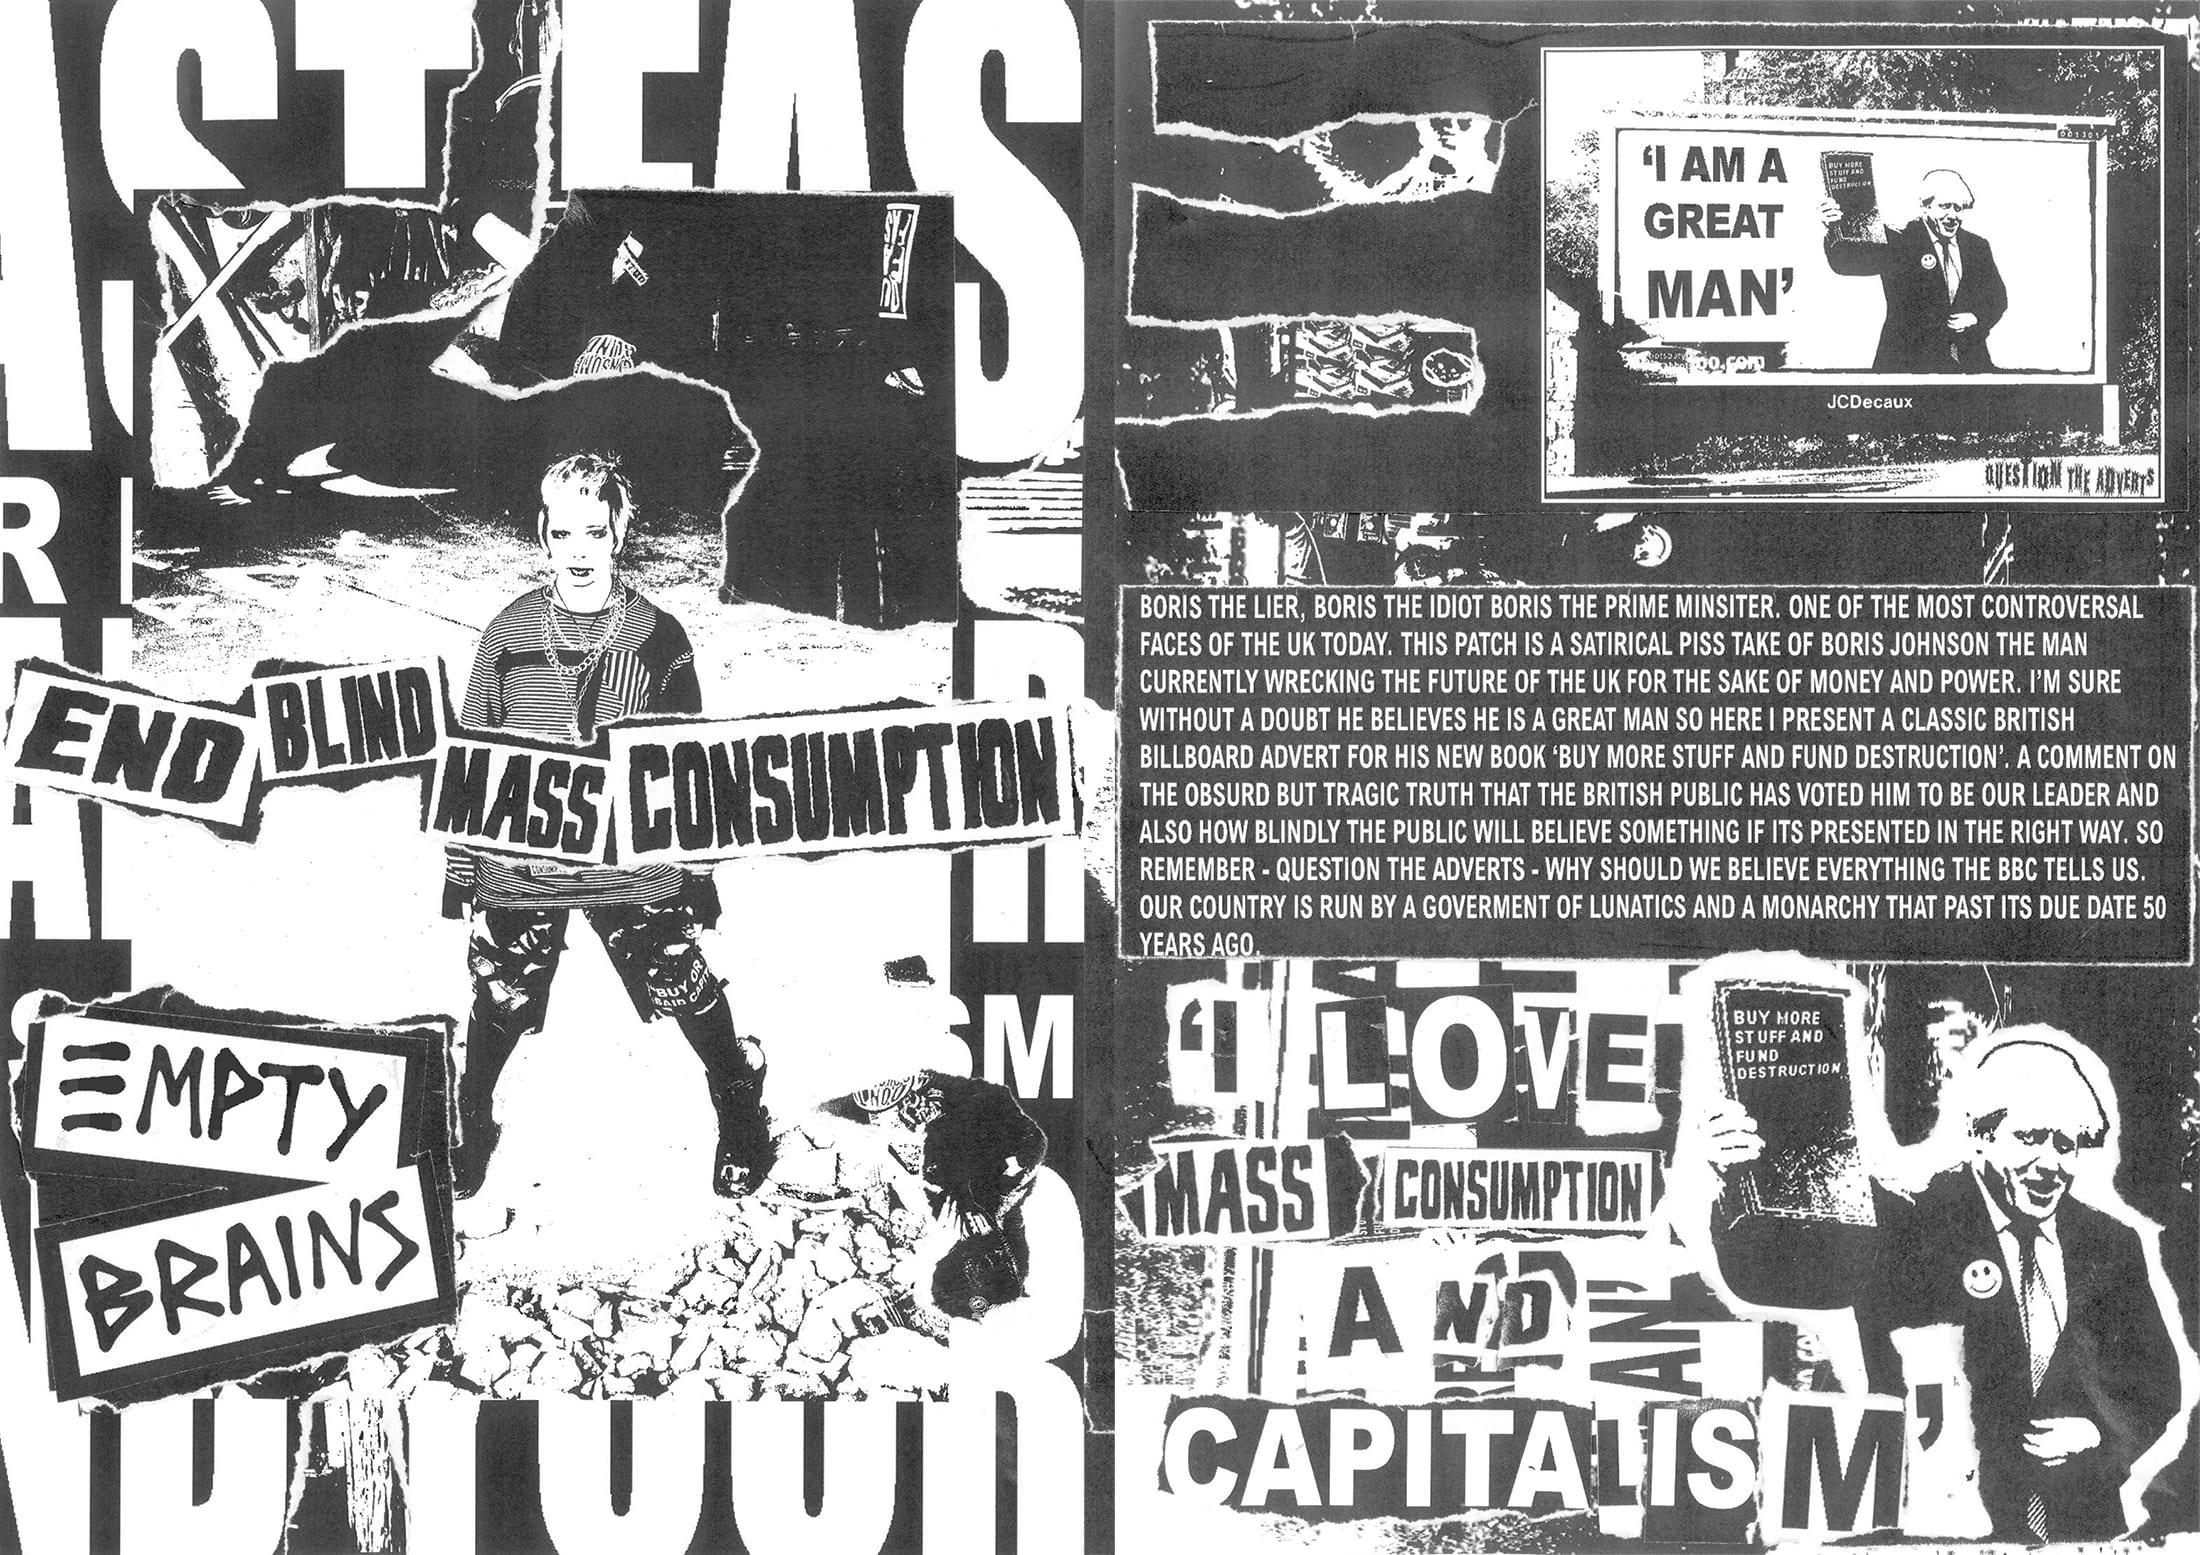 2 Pages from the End Blind Mass Consumption Zine